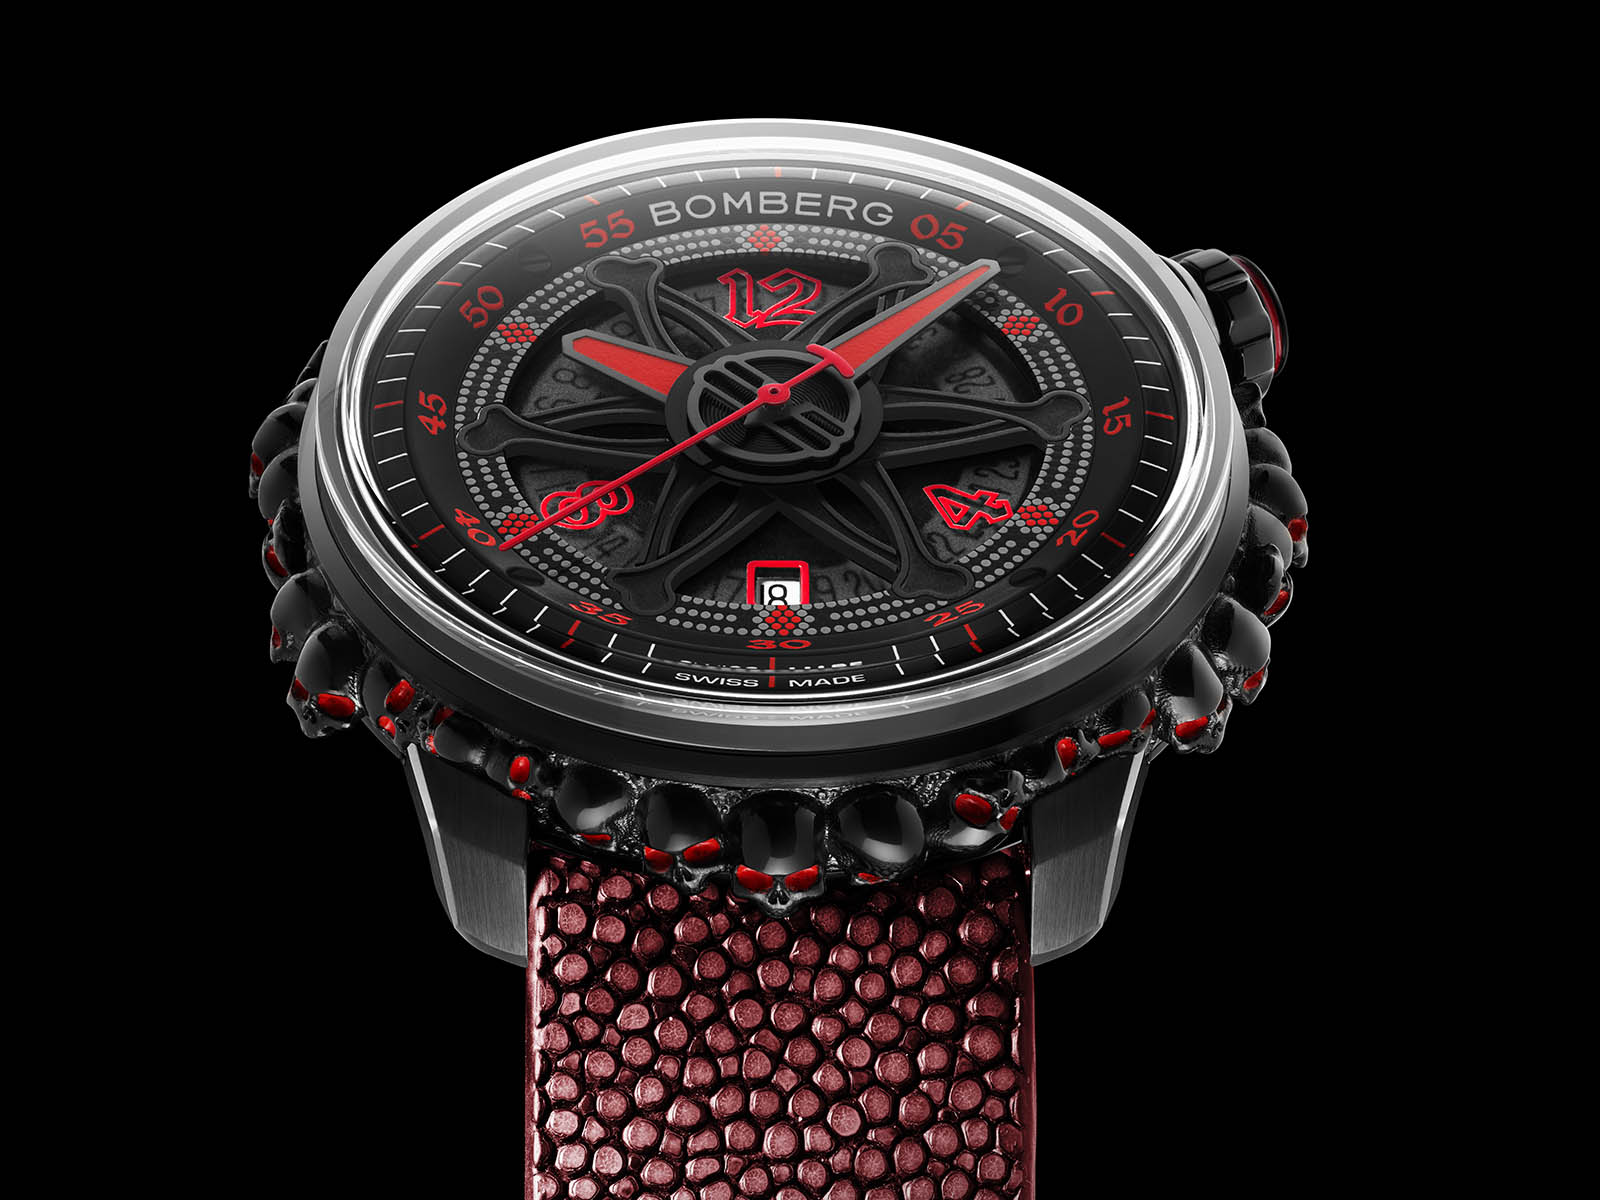 ct43apba-25-2-11-bomberg-gothic-bb-01-automatic-red-catacomb-limited-edition-1.jpg